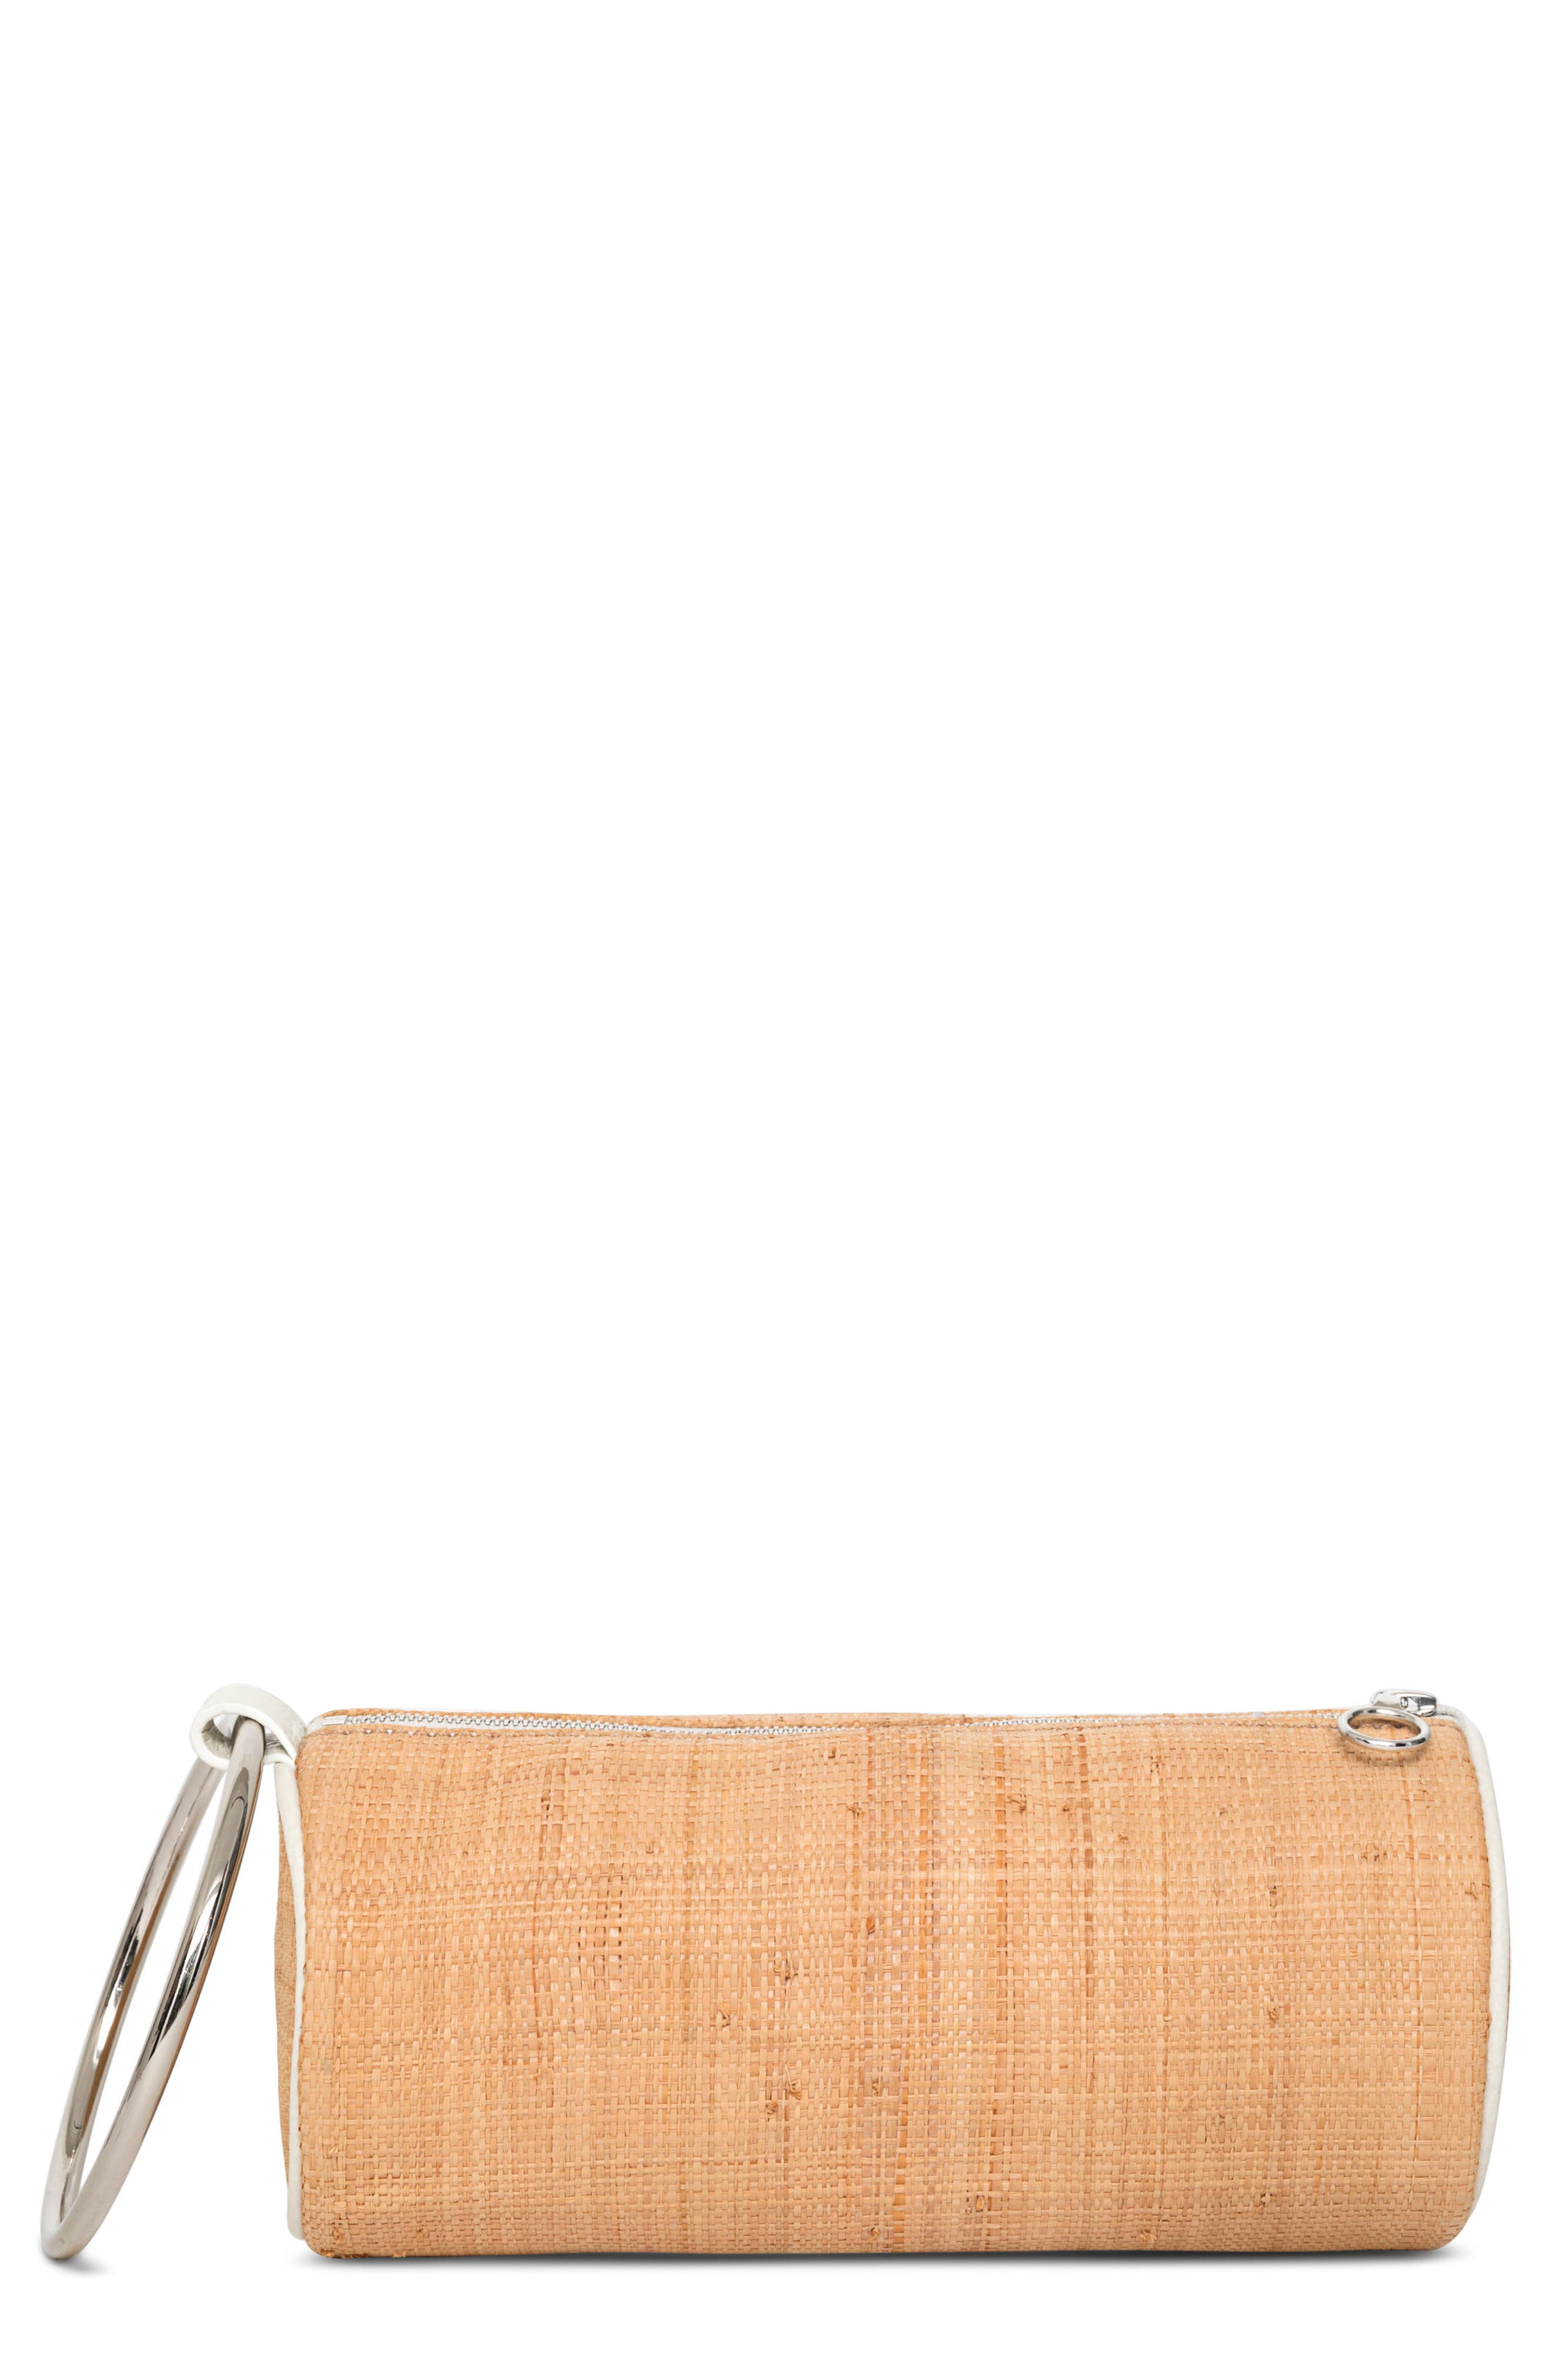 Straw Duffel Wristlet Clutch,                             Main thumbnail 1, color,                             250